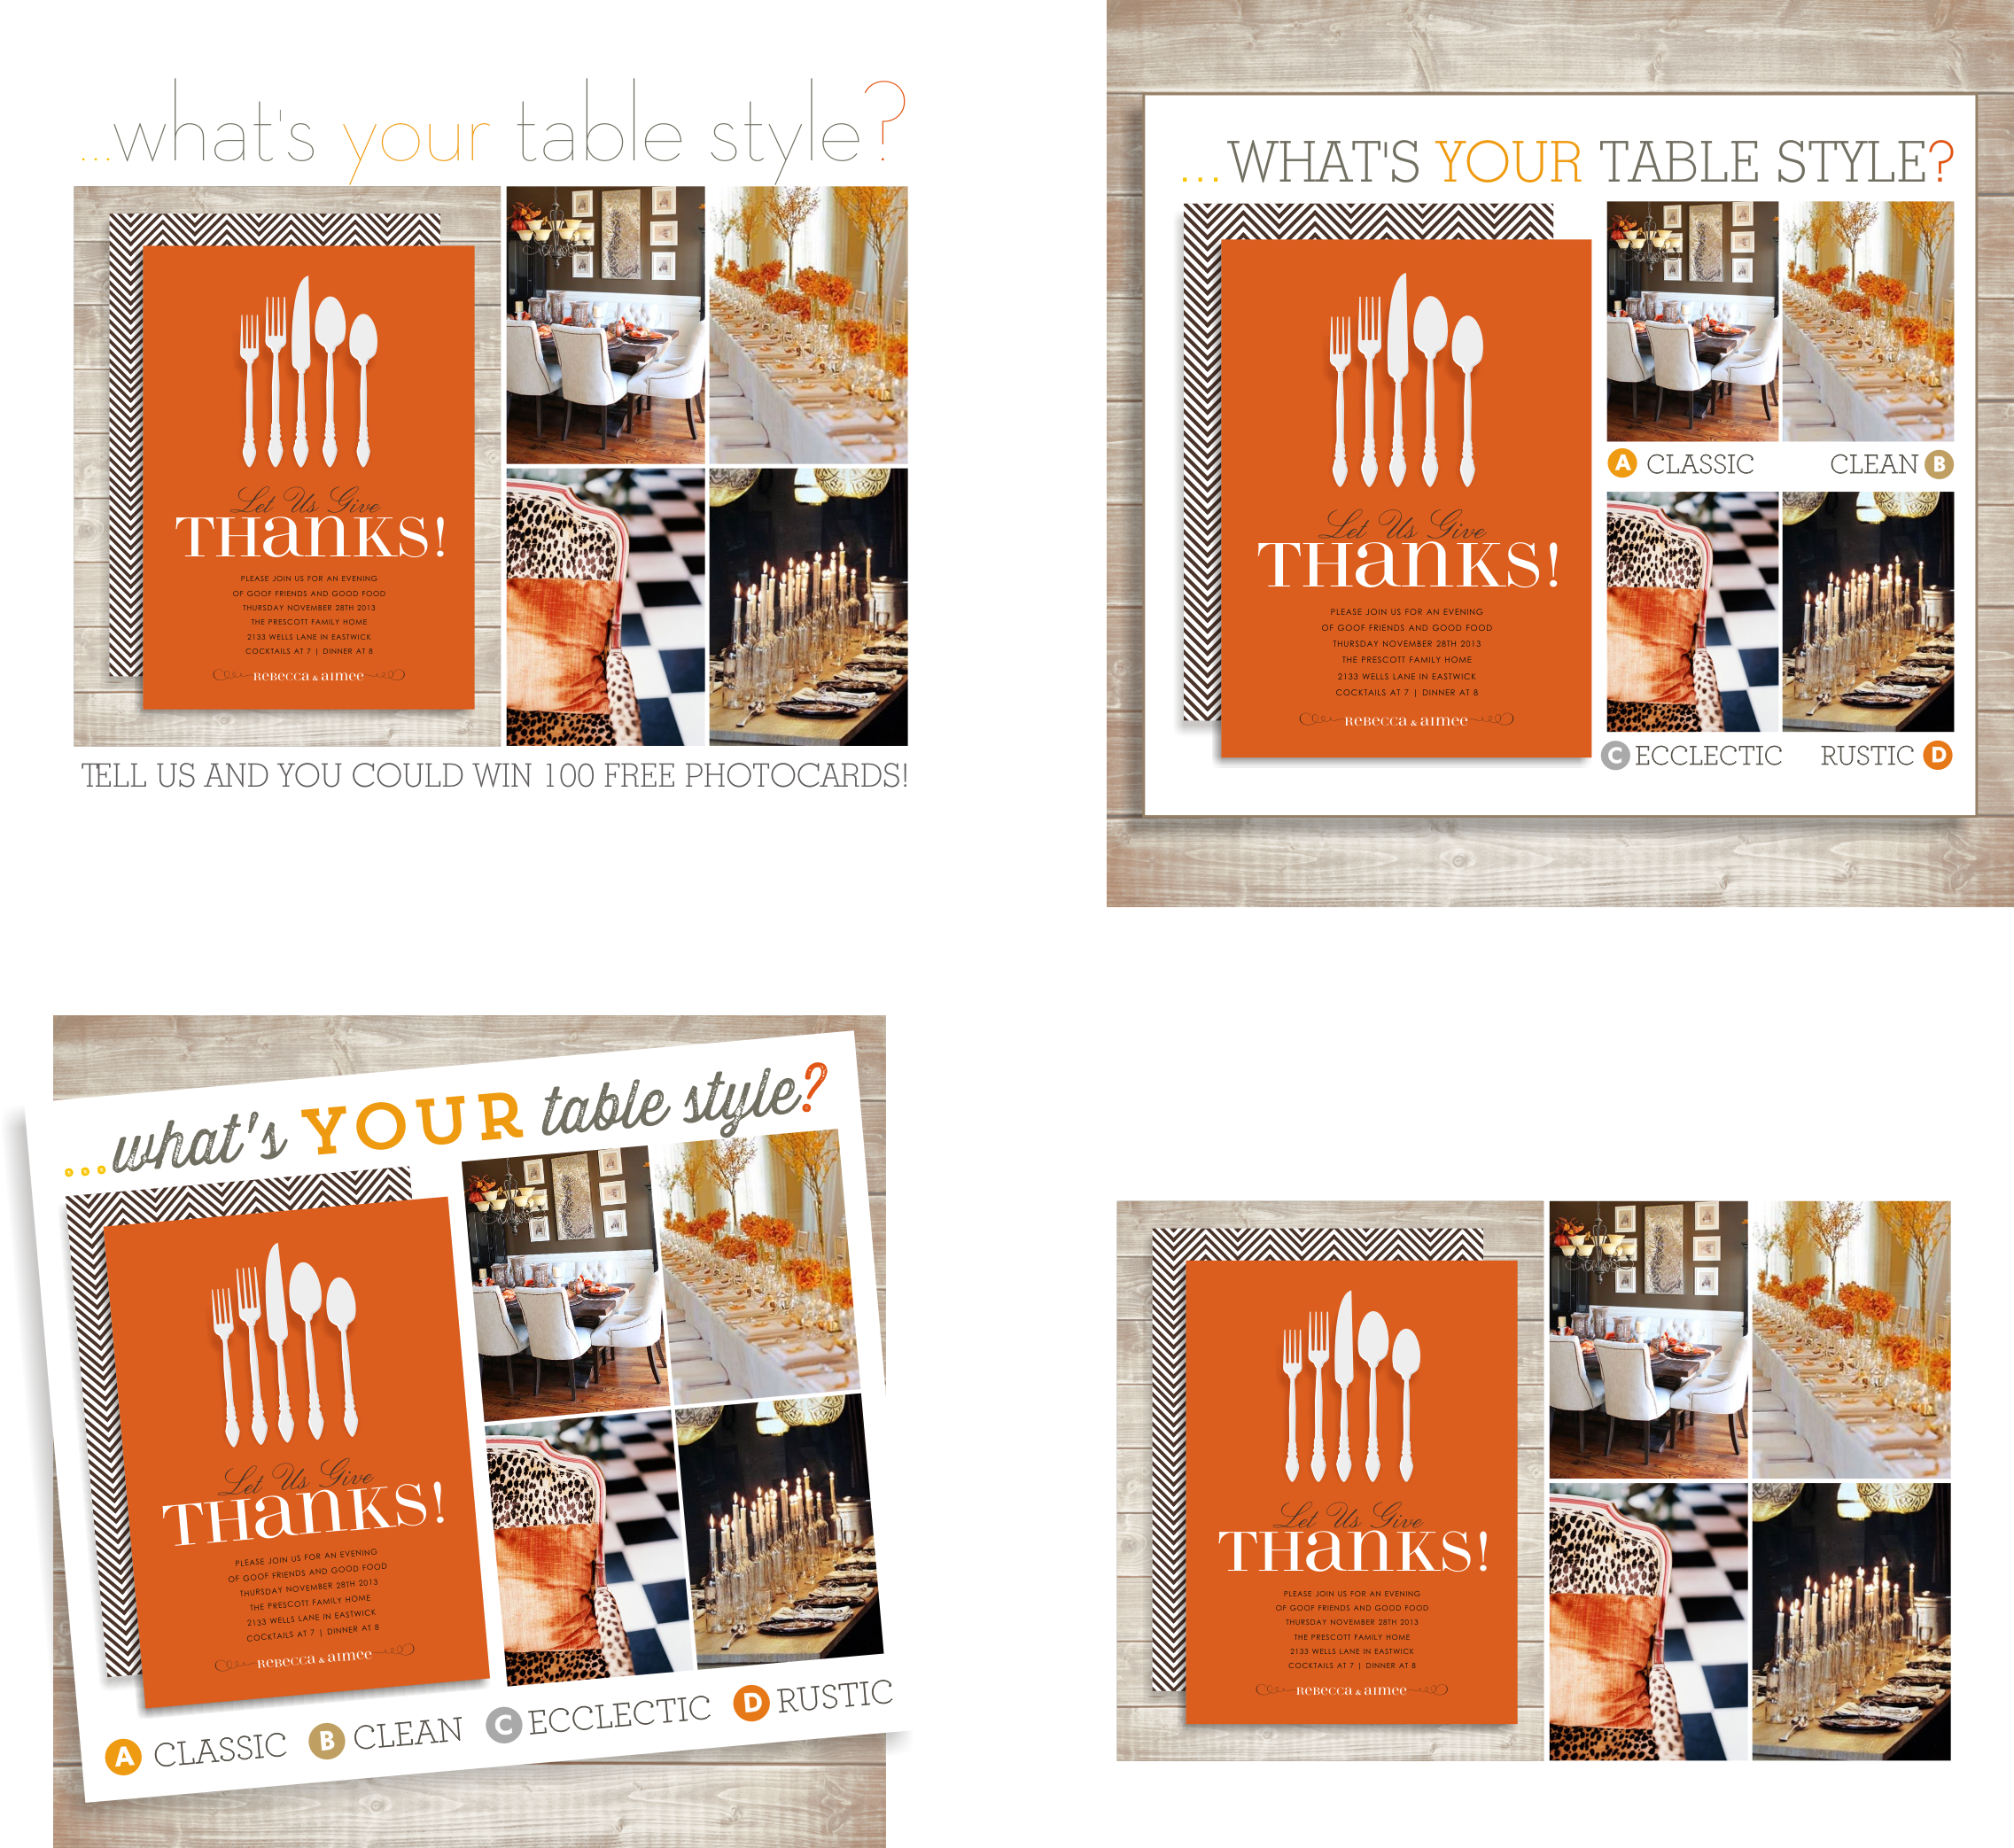 2013 1115 thanksgiving tables test 02.png